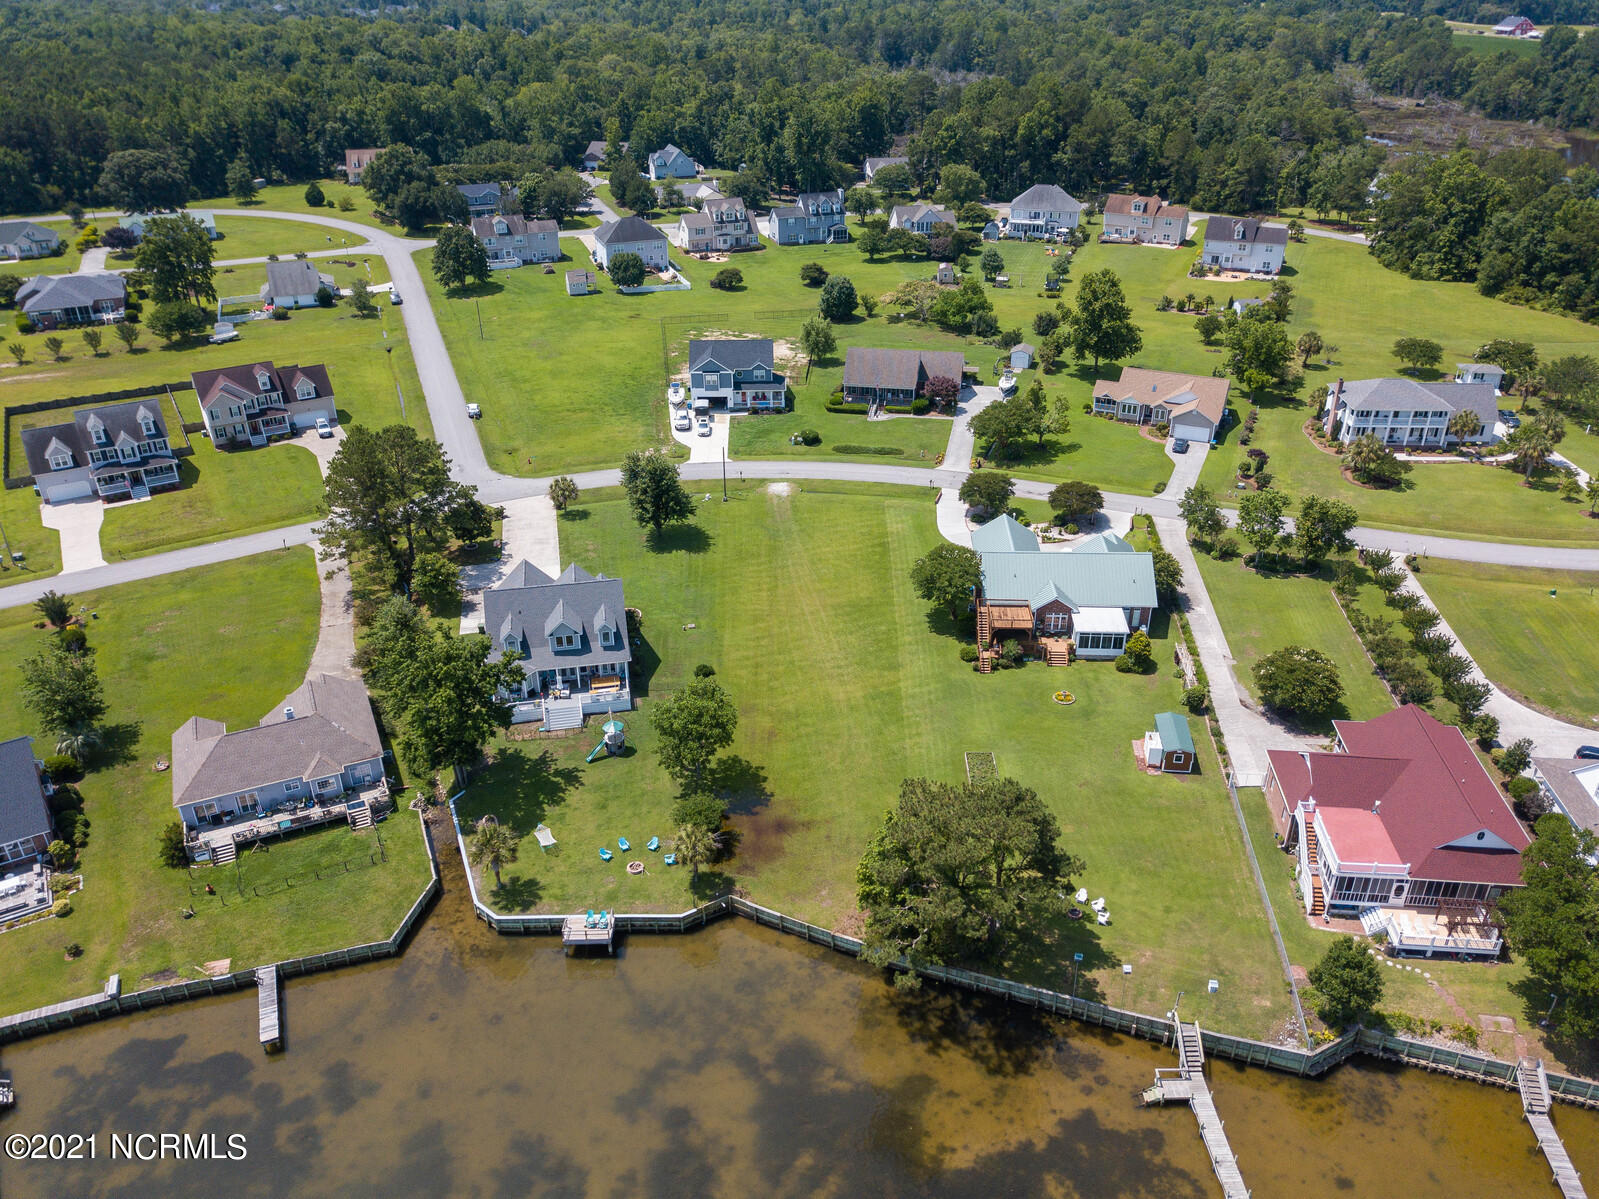 702 Willbrook Circle, Sneads Ferry, North Carolina 28460, ,Residential land,For sale,Willbrook,100277346